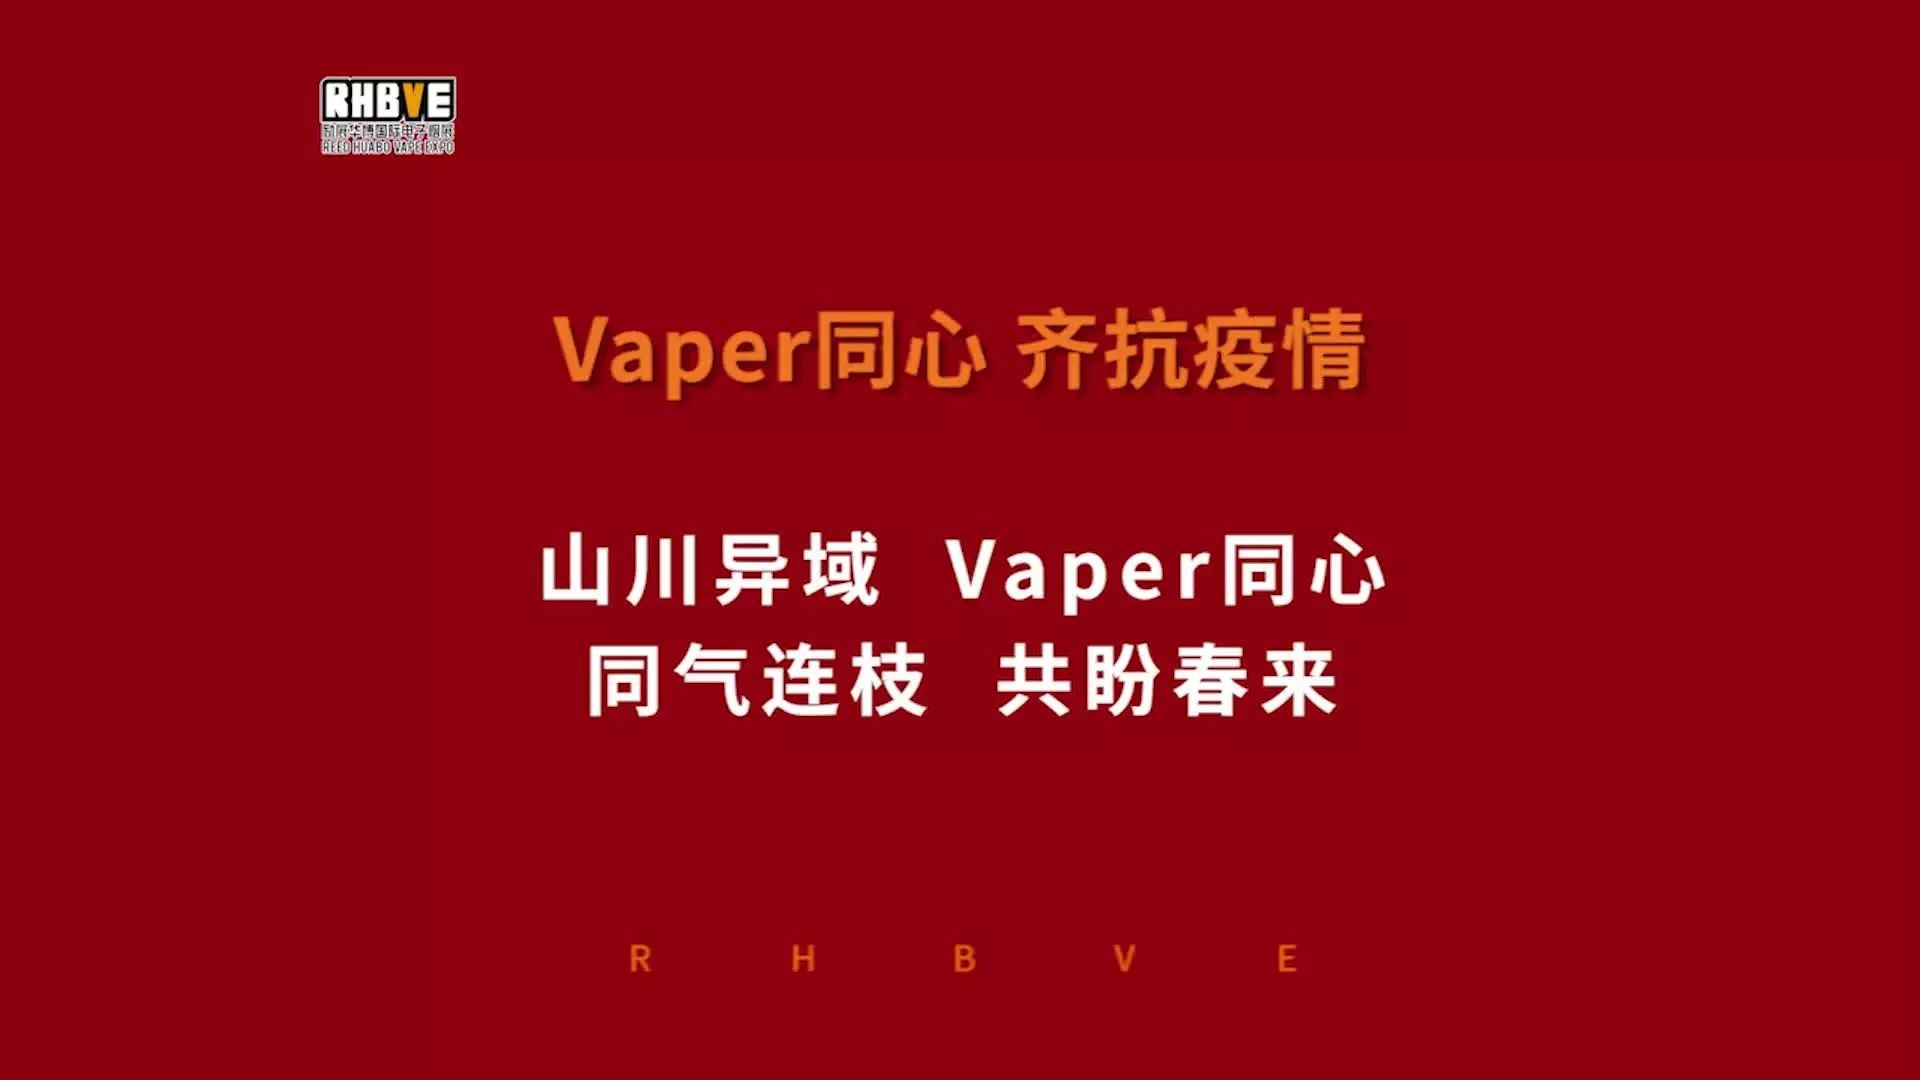 RHBVE & 30 e-cigarette enterprises cheer for China